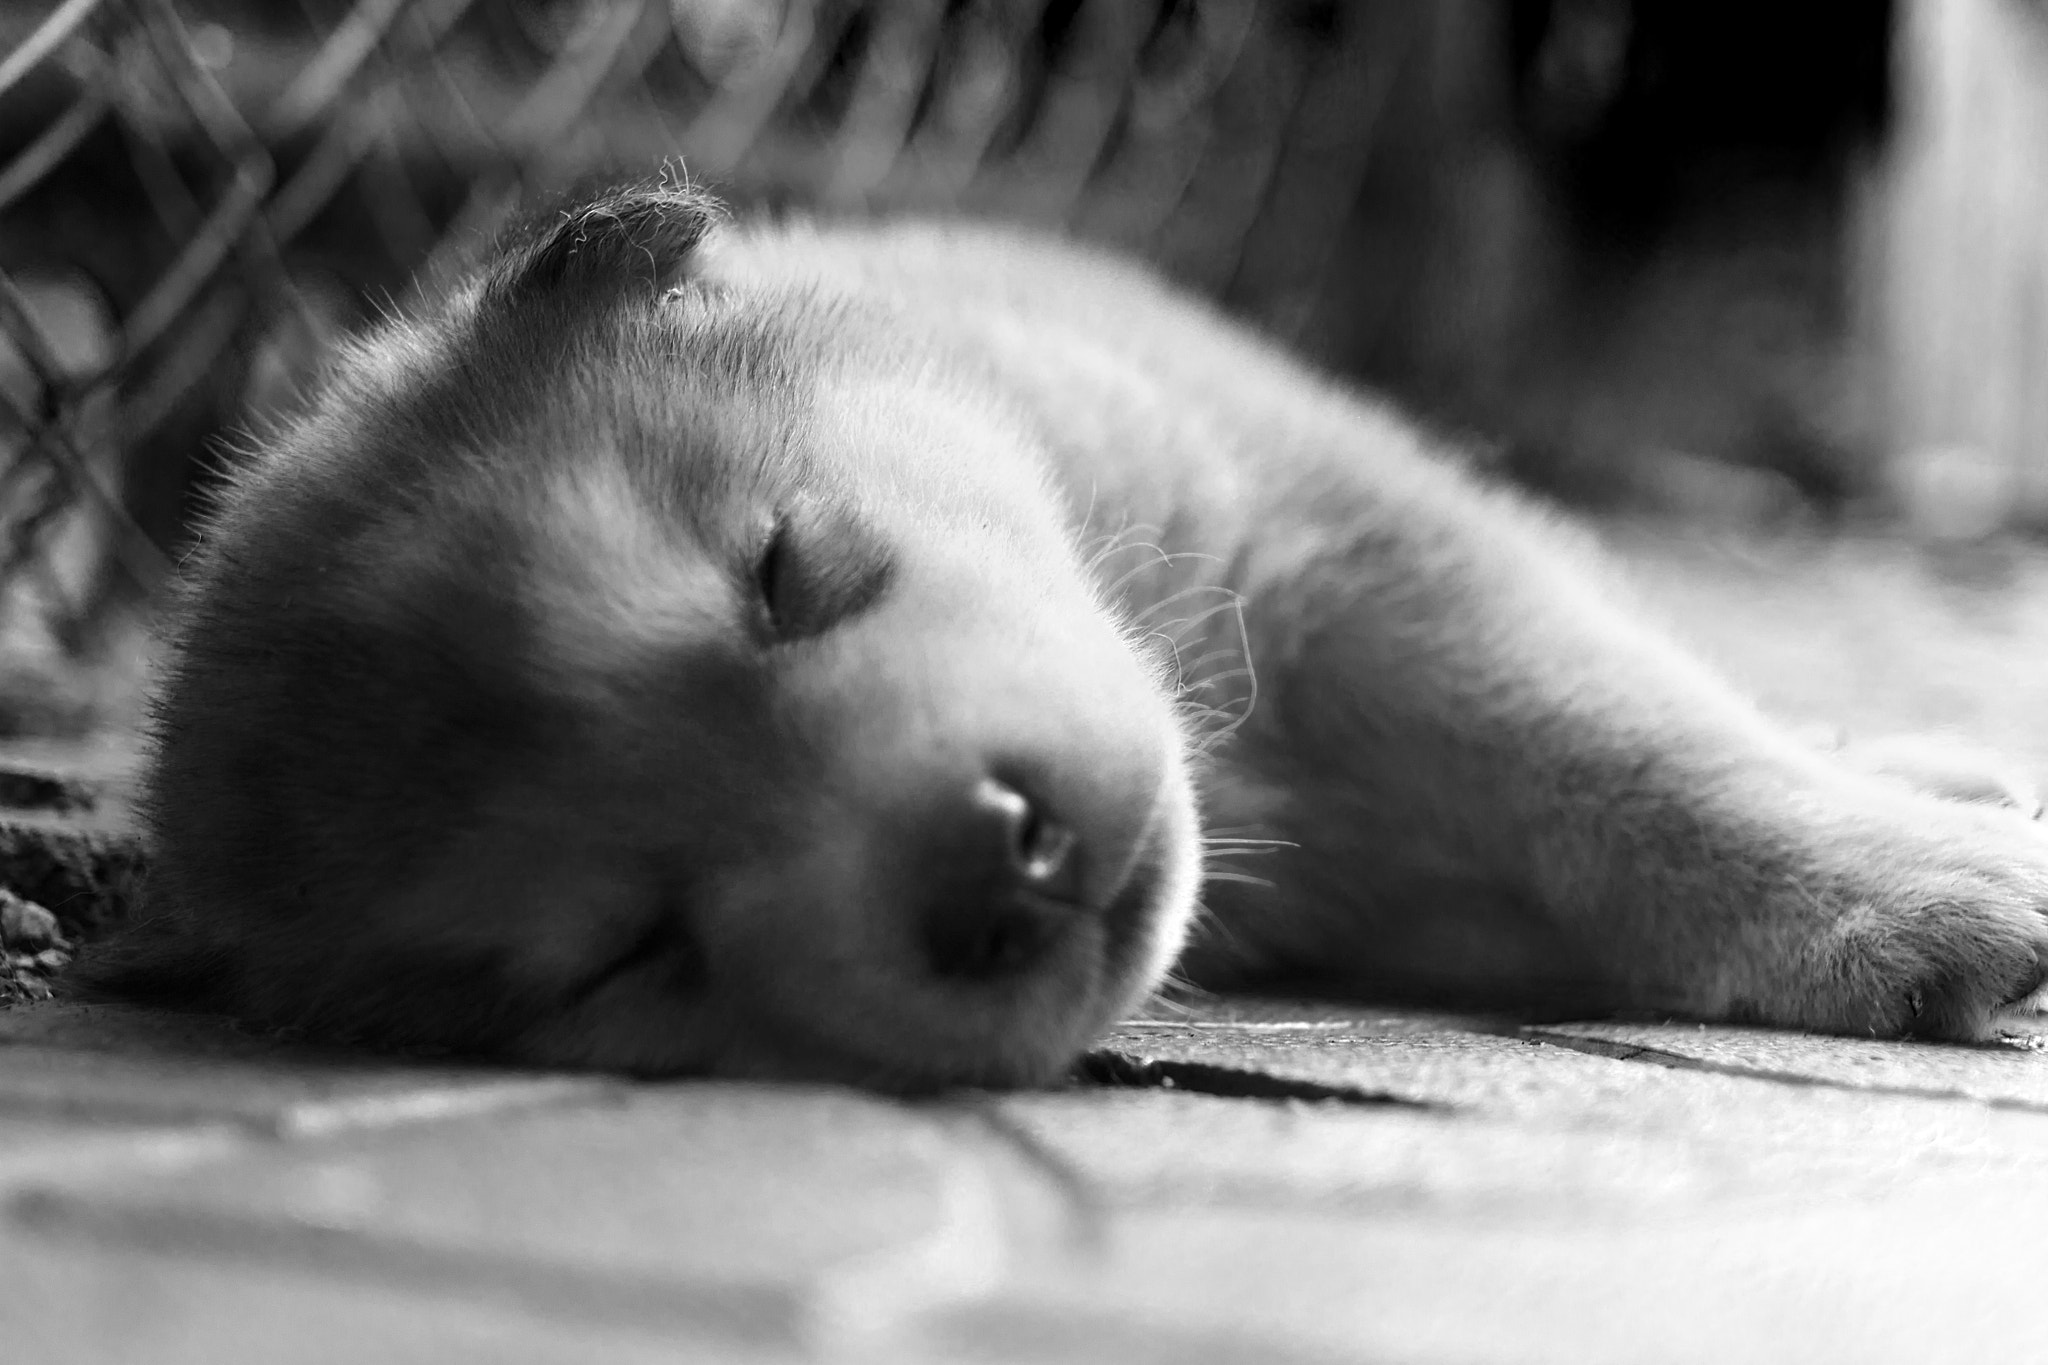 Photograph Sleeping Puppy :) by Eugene Chuev on 500px